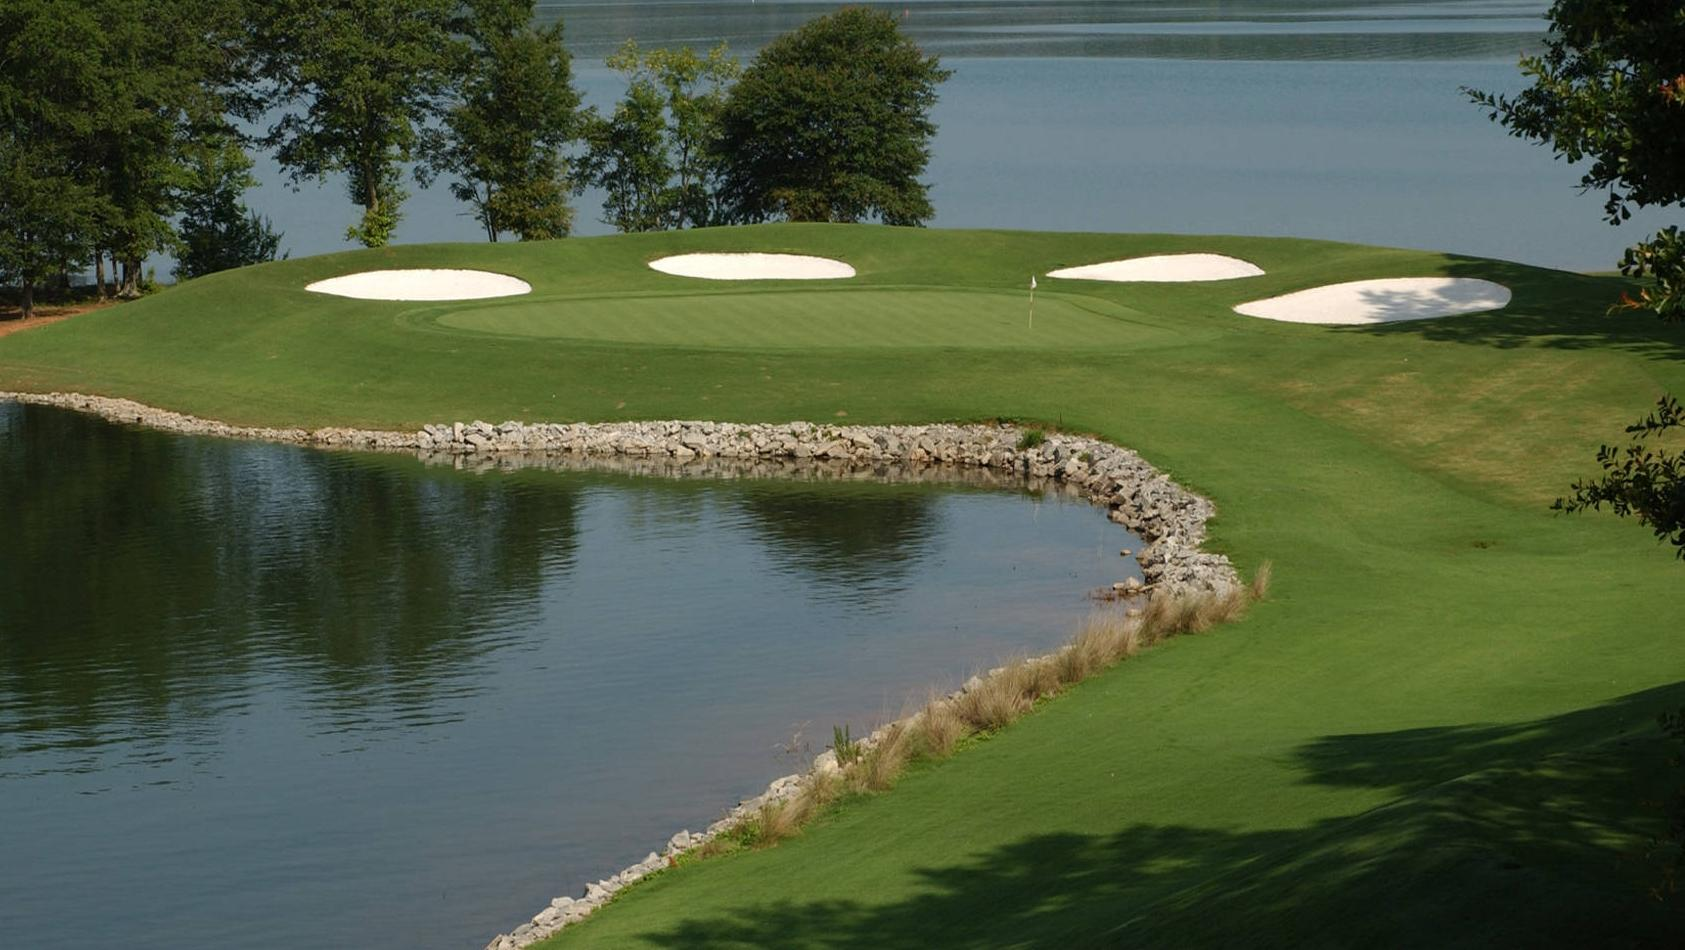 Clemson's Walker Course Ranked Among Top Nine College Courses